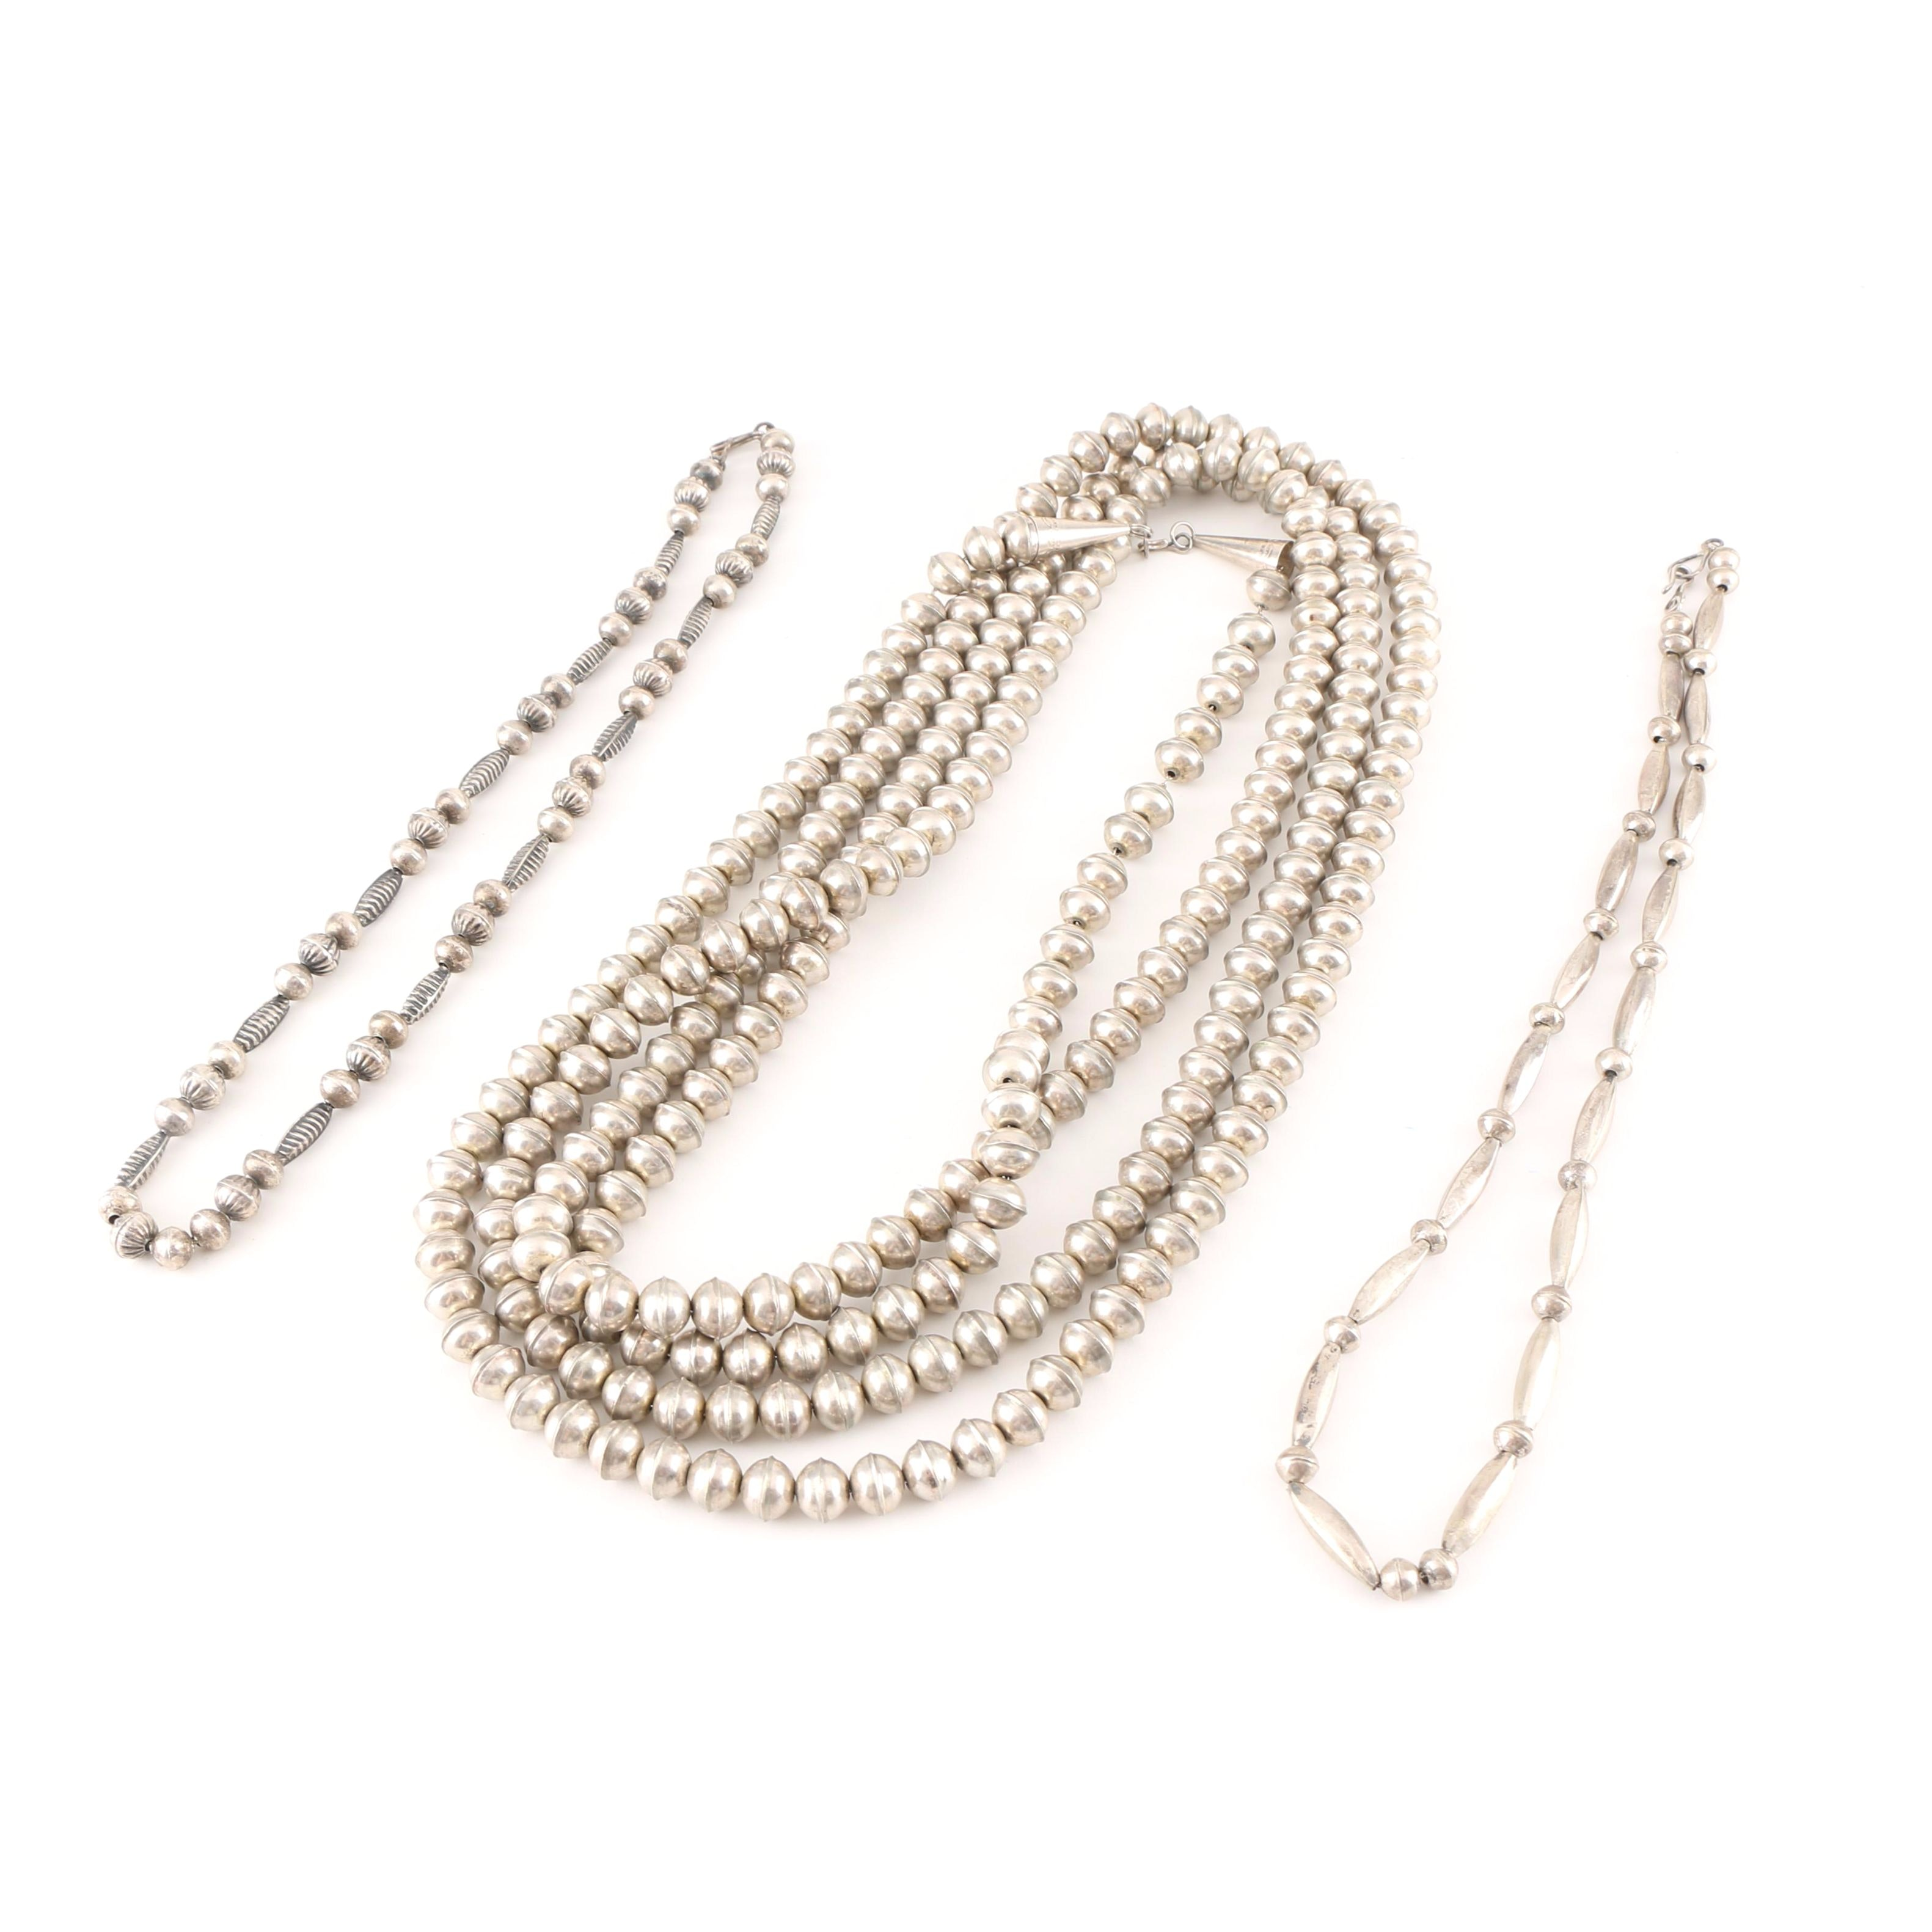 Pair of Metal Beaded Necklaces With One Sterling Silver Necklace